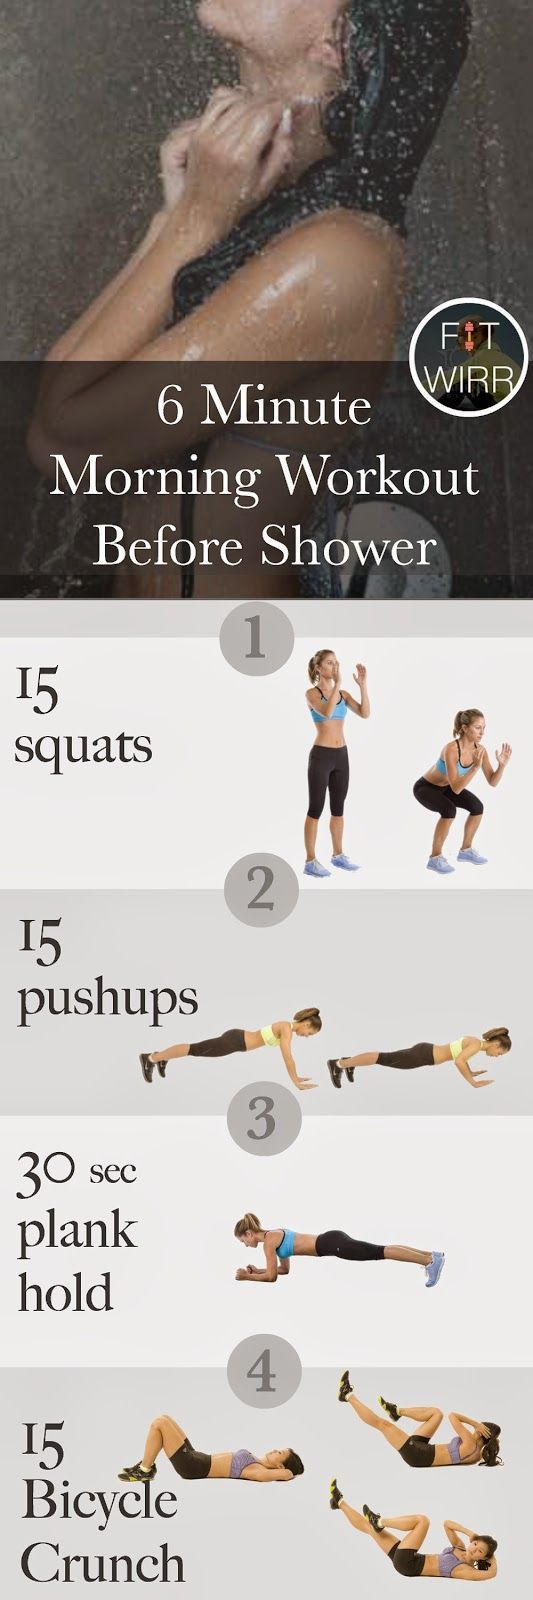 6 Minute Morning Workout.